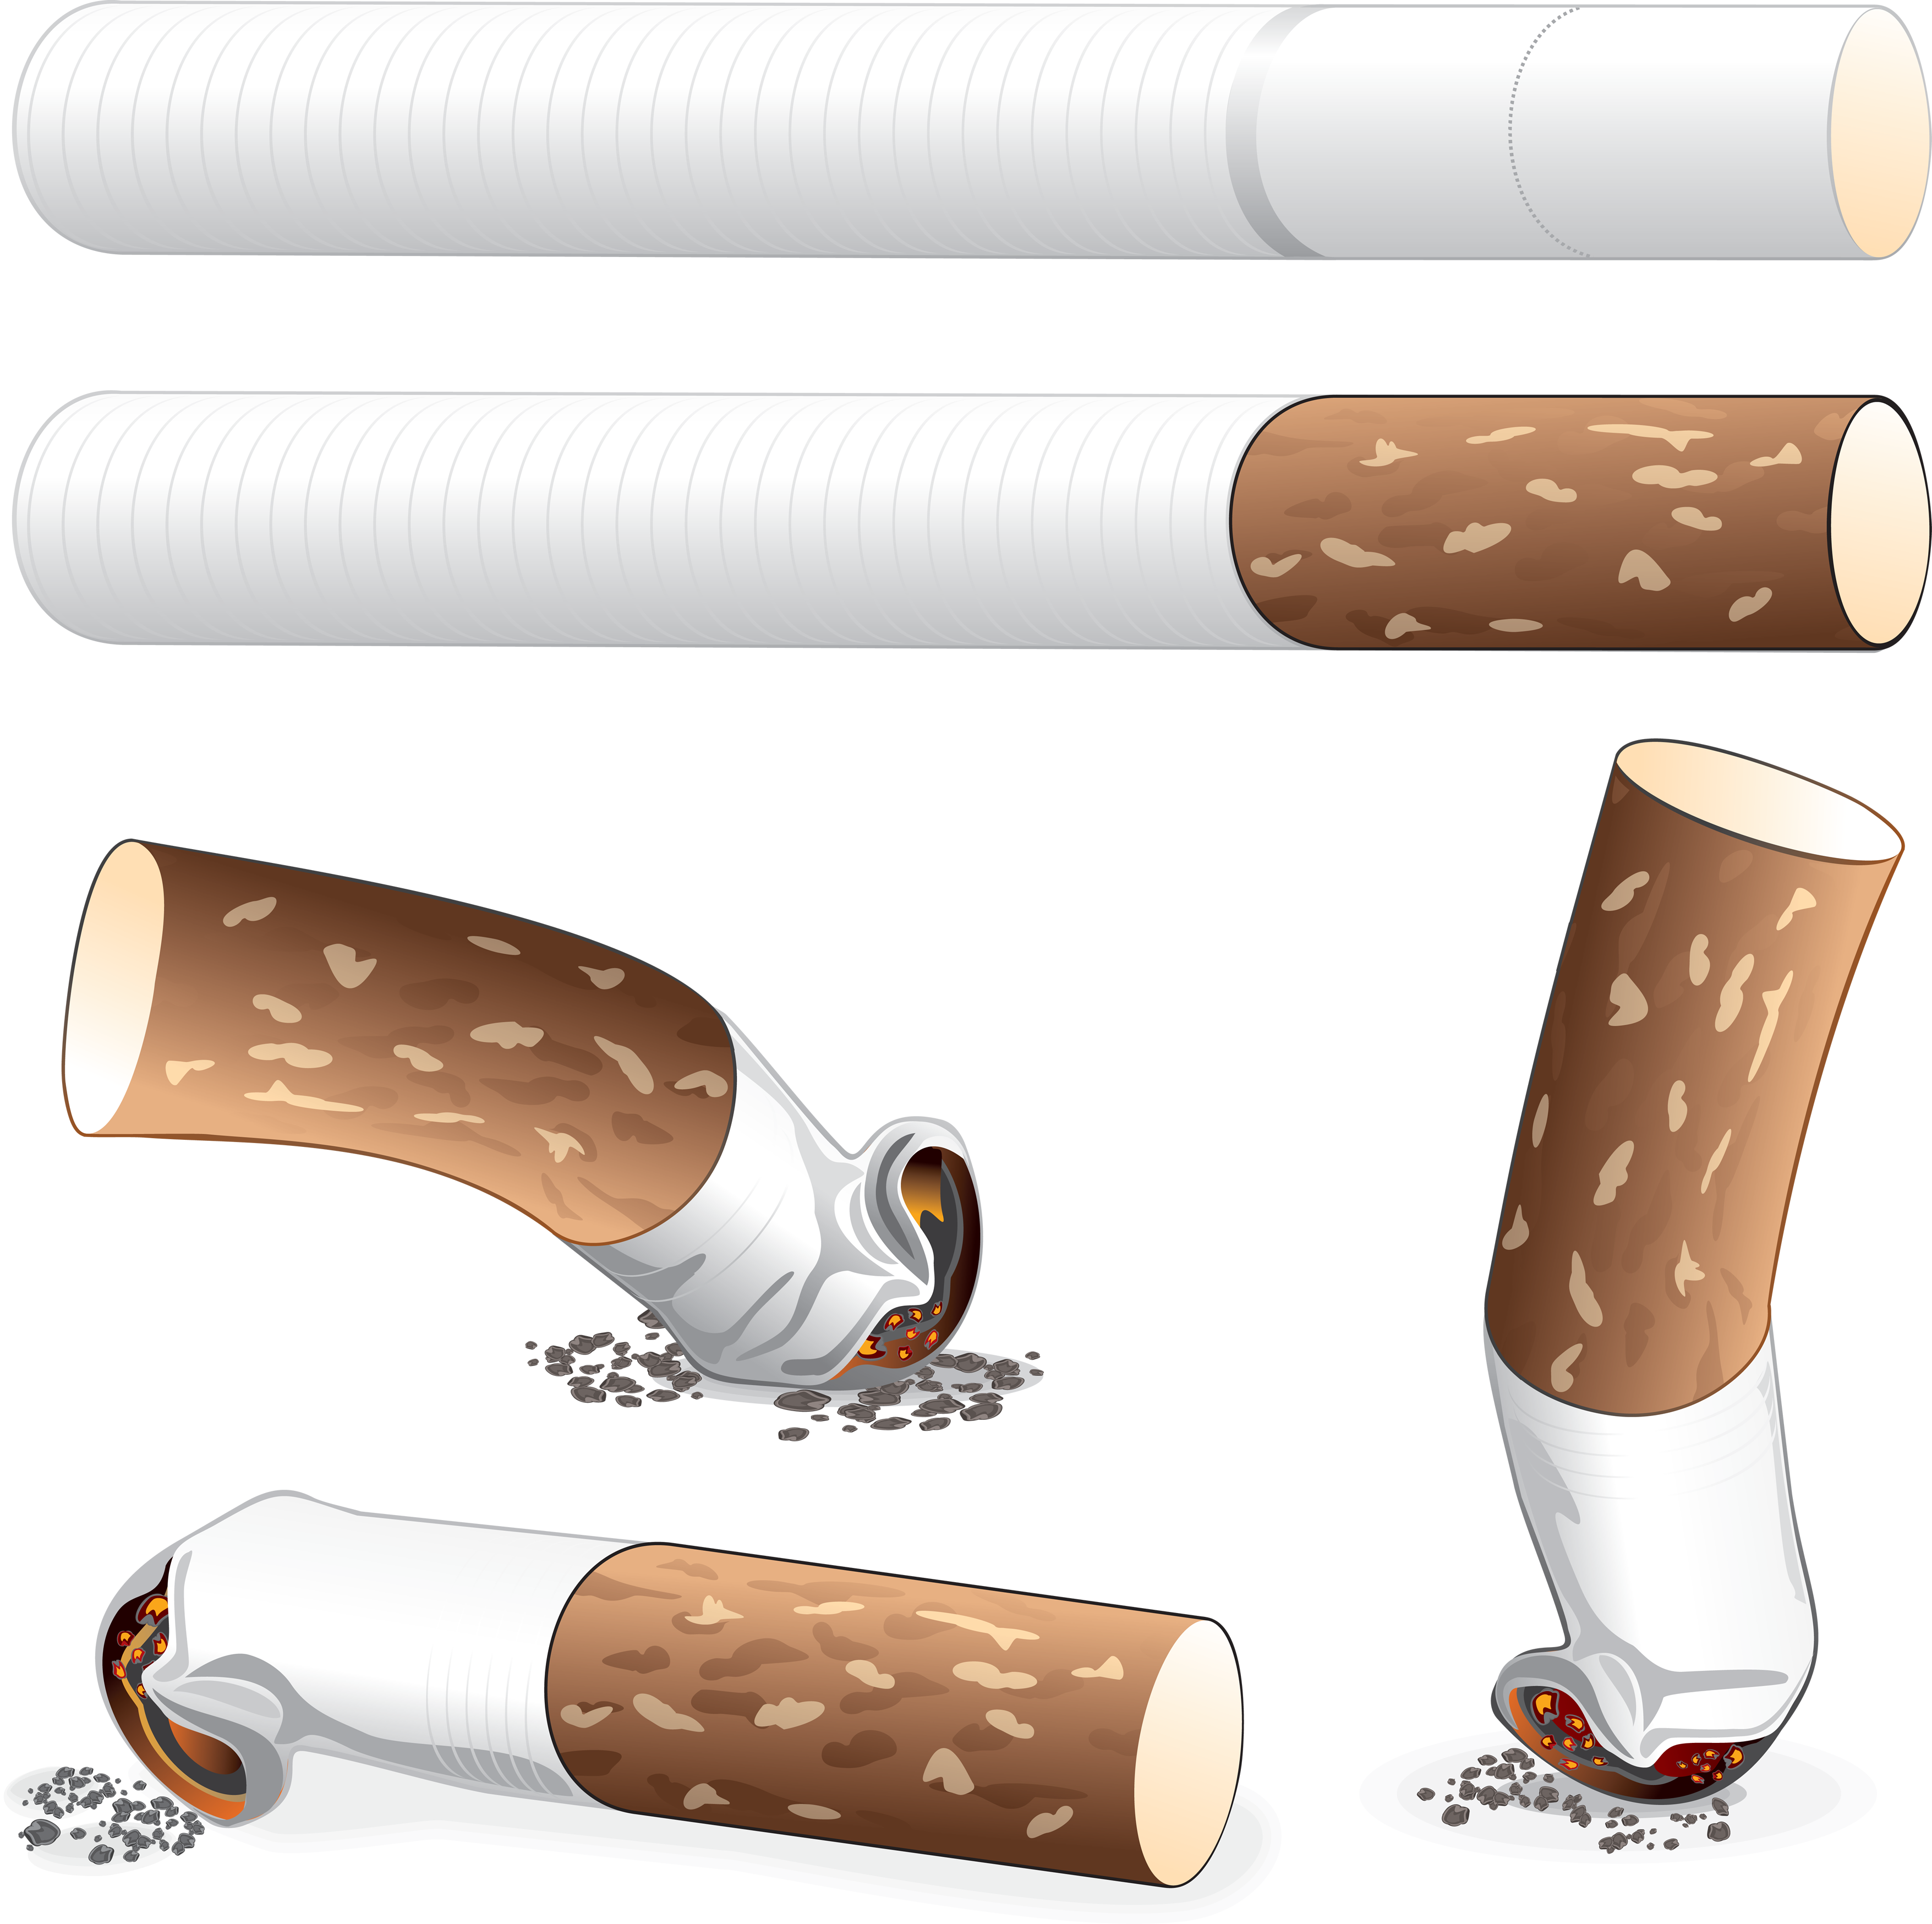 Cigarette png images free. Pregnancy clipart tobacco smoking